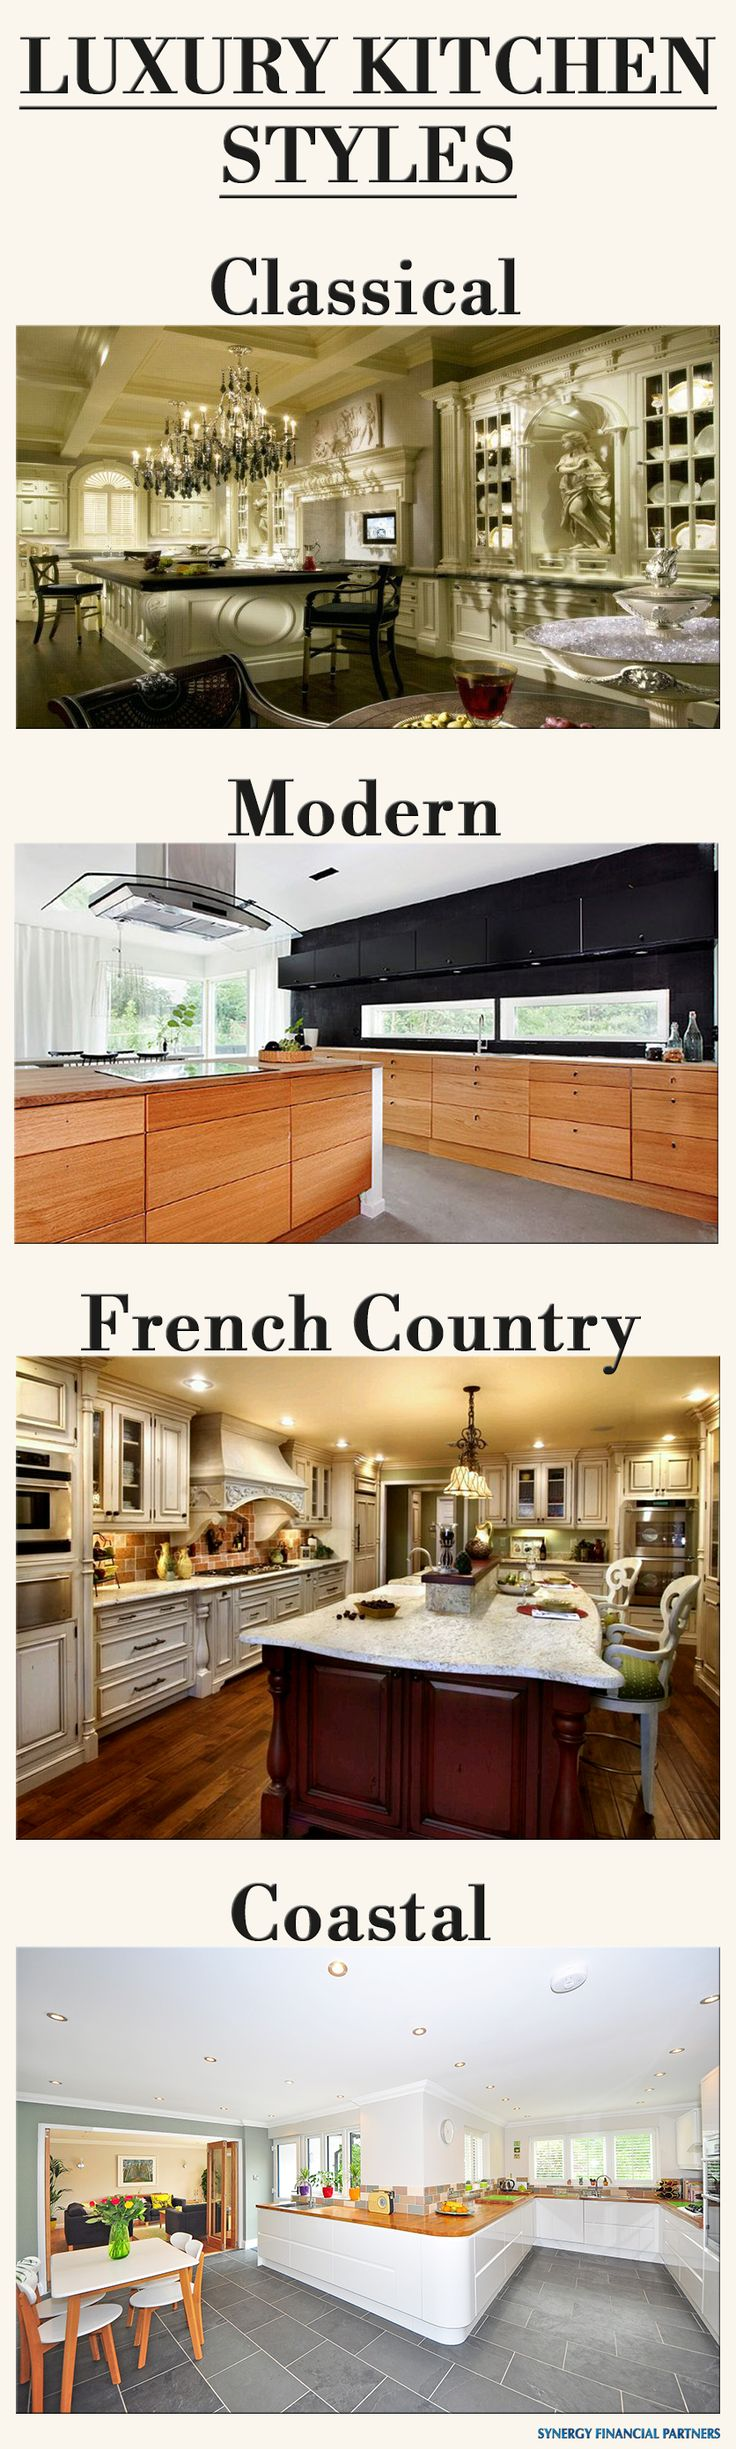 Luxury-Kitchen-Styles. Classical, Modern, French Country and Coastal luxury kitchen designs are popular projects for home renovation loans. Learn more about home rehab loans by filling out our lead form.